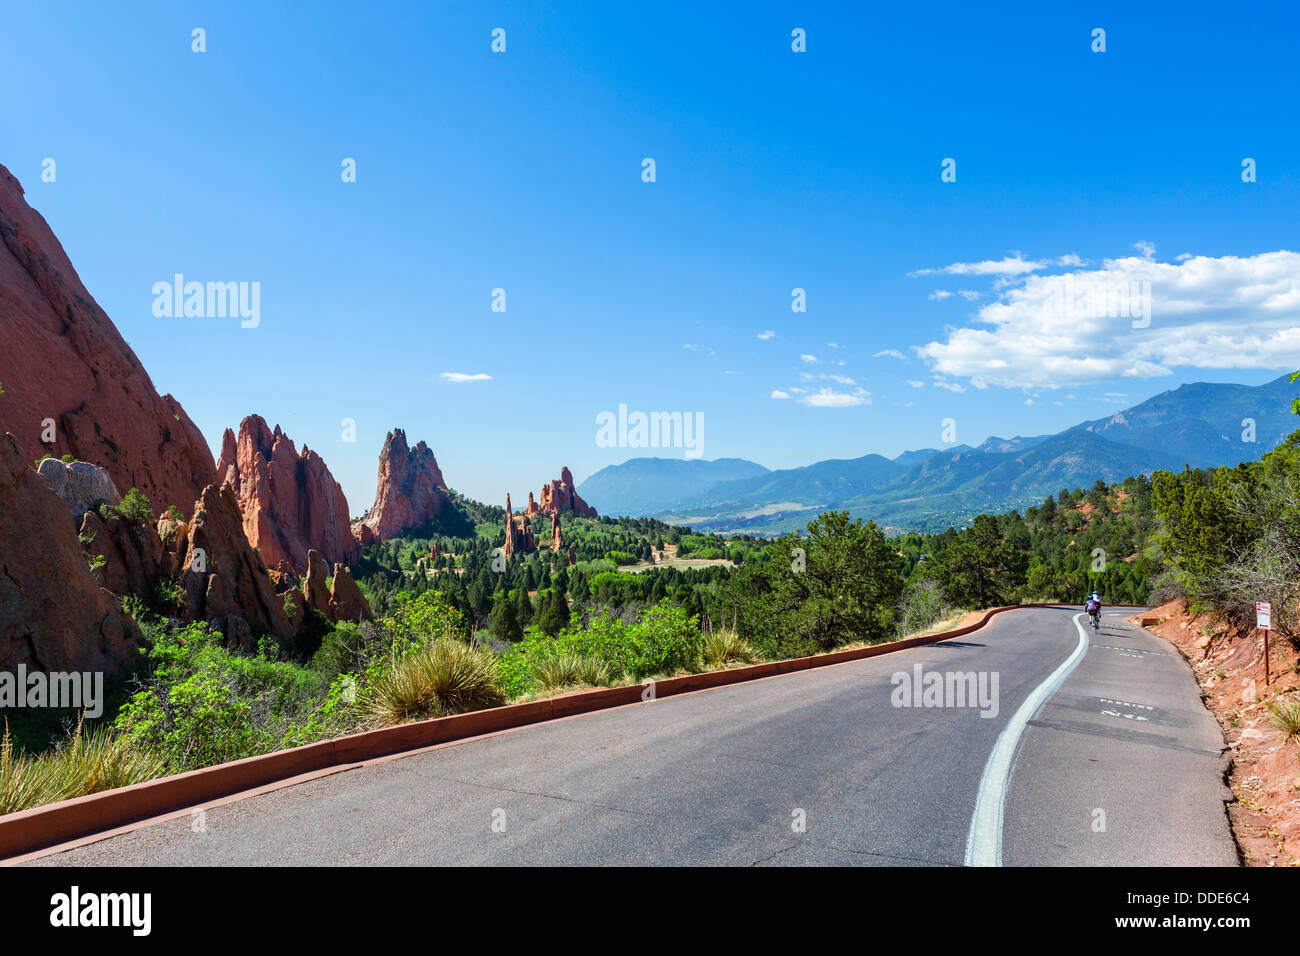 Road through Garden of The Gods public park with two cyclists in the distance, Colorado Springs, Colorado, USA - Stock Image